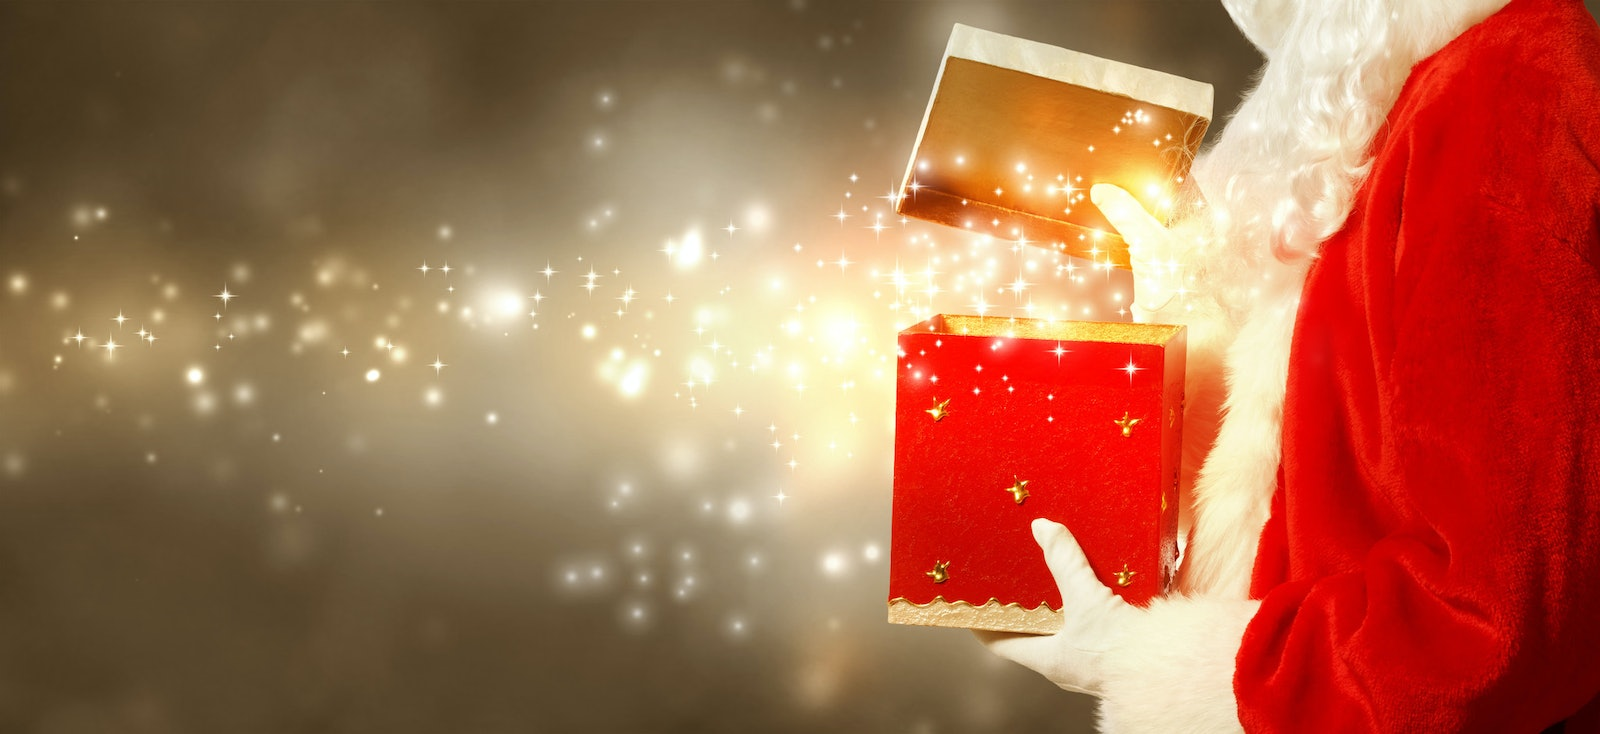 AdobeStock_94251896 - Santa Claus opening a red Christmas present on brown gold colored background